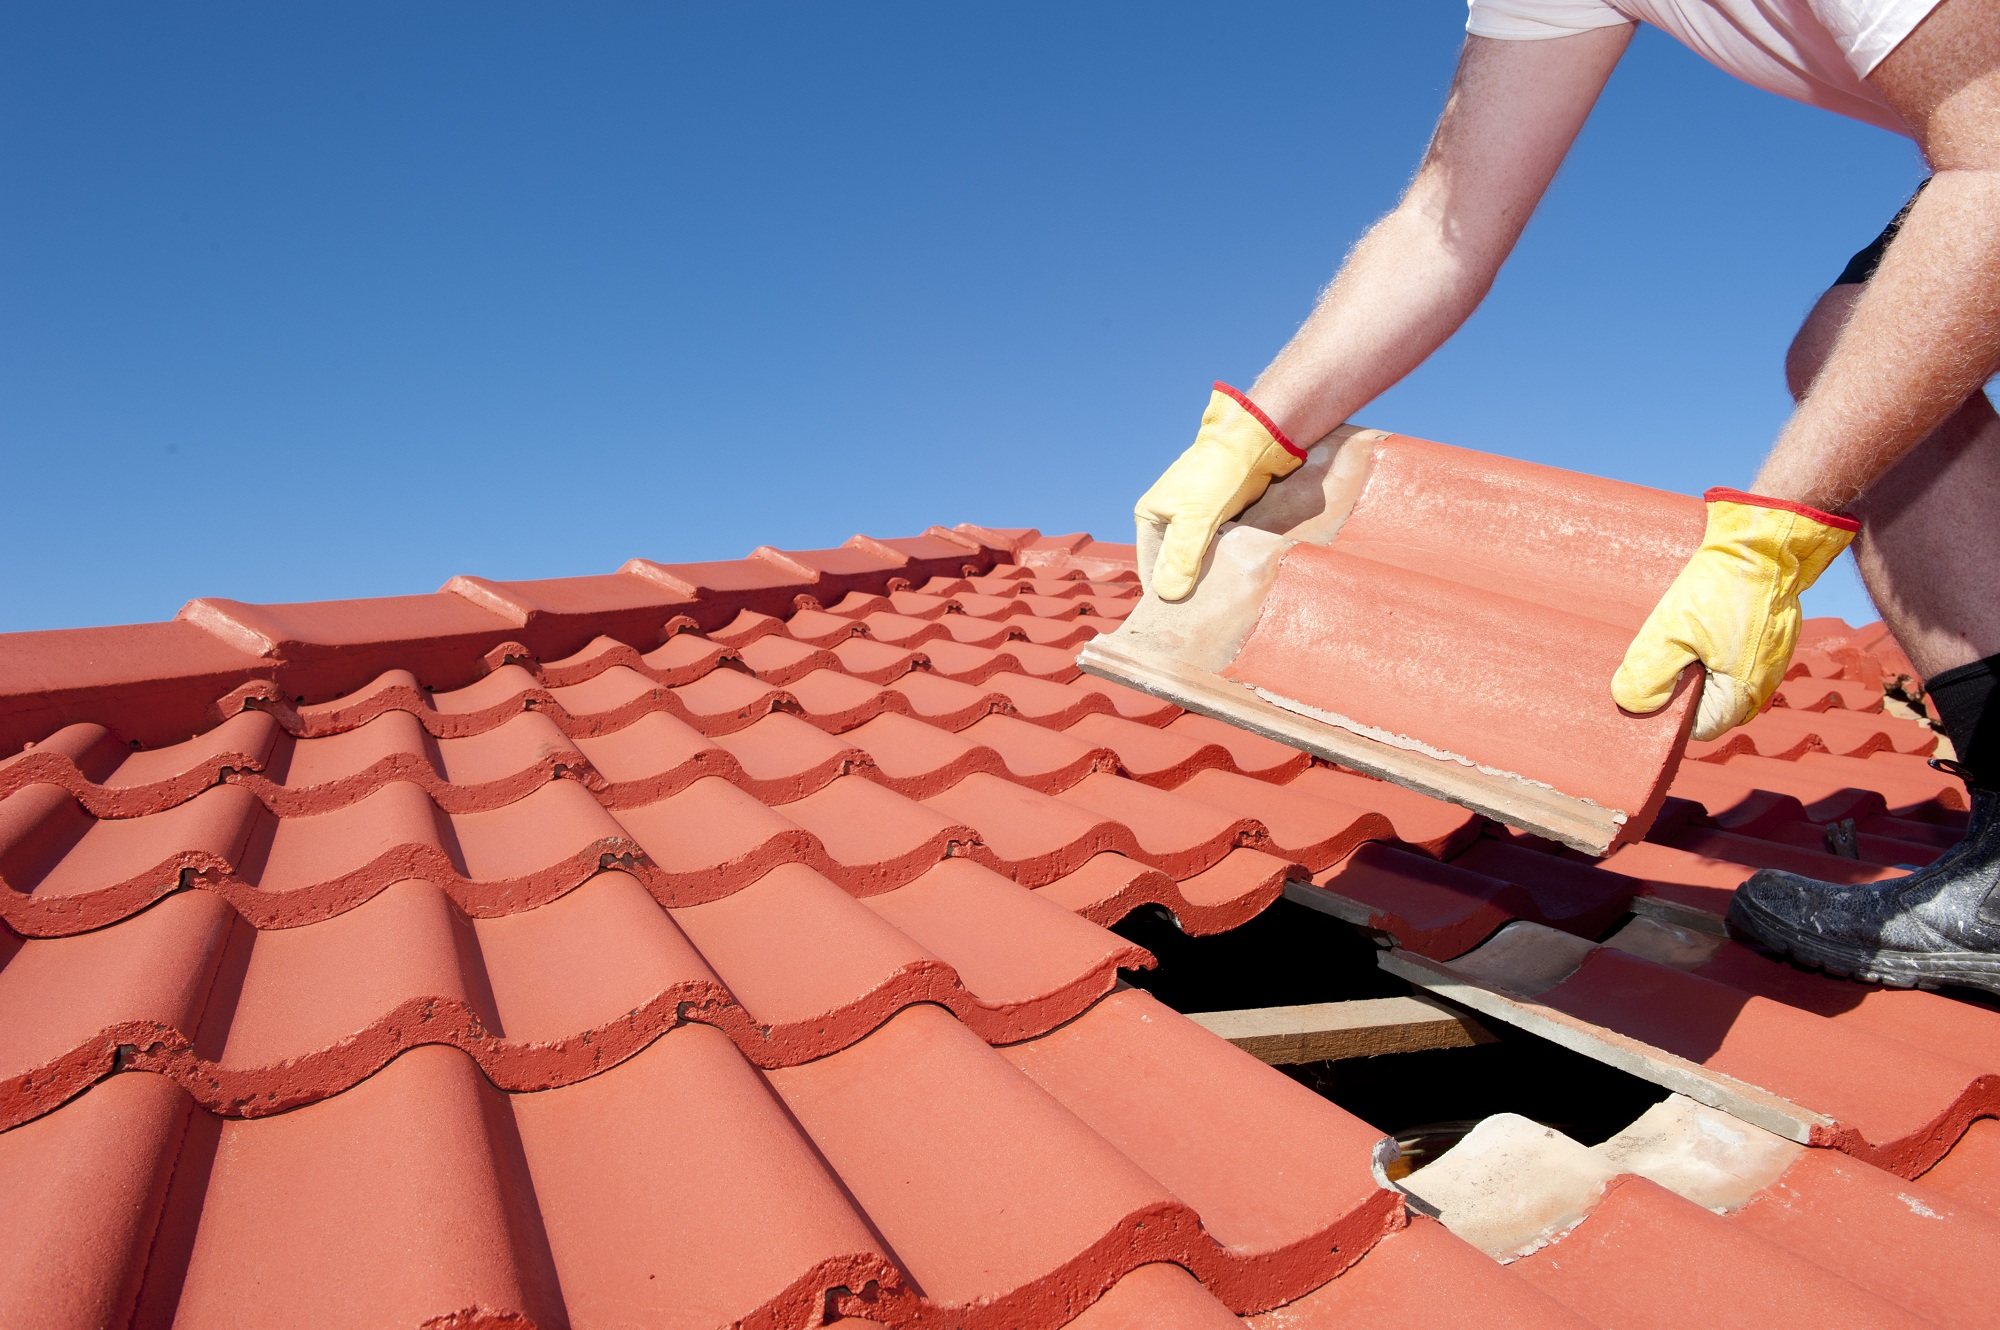 Roof Replacement: How Often Should You Do It? | My Decorative